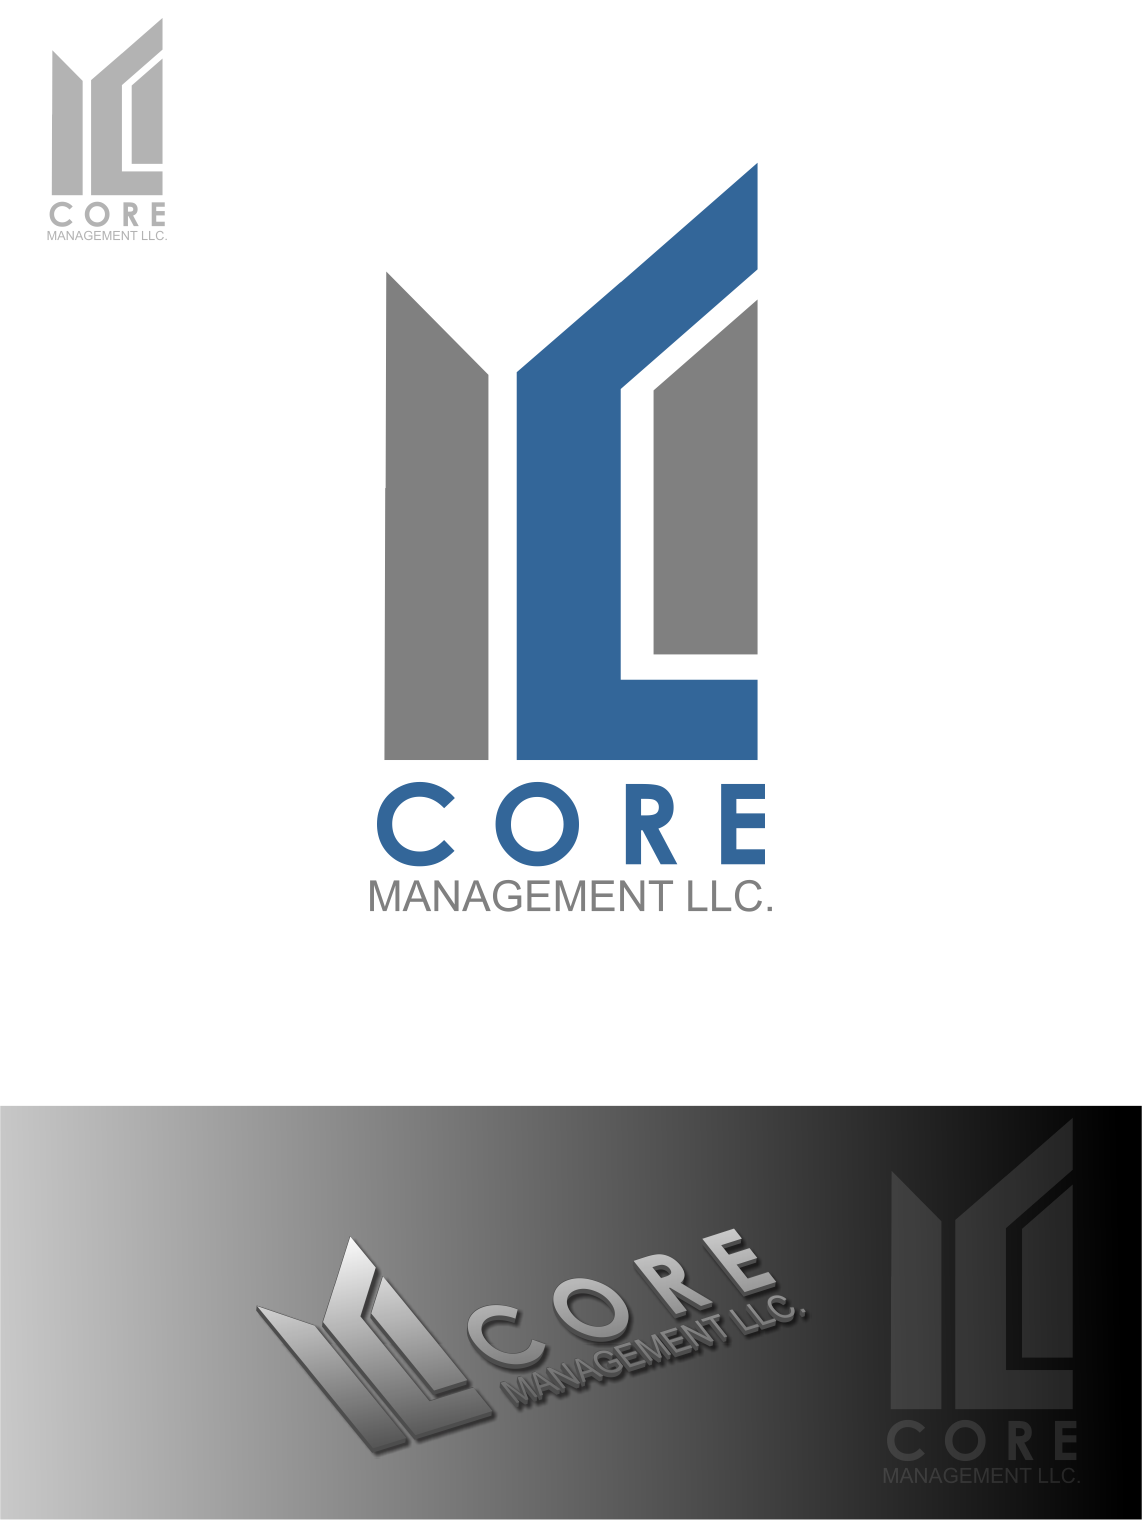 Logo Design by Agus Martoyo - Entry No. 188 in the Logo Design Contest Creative Logo Design for CORE Management, LLC.